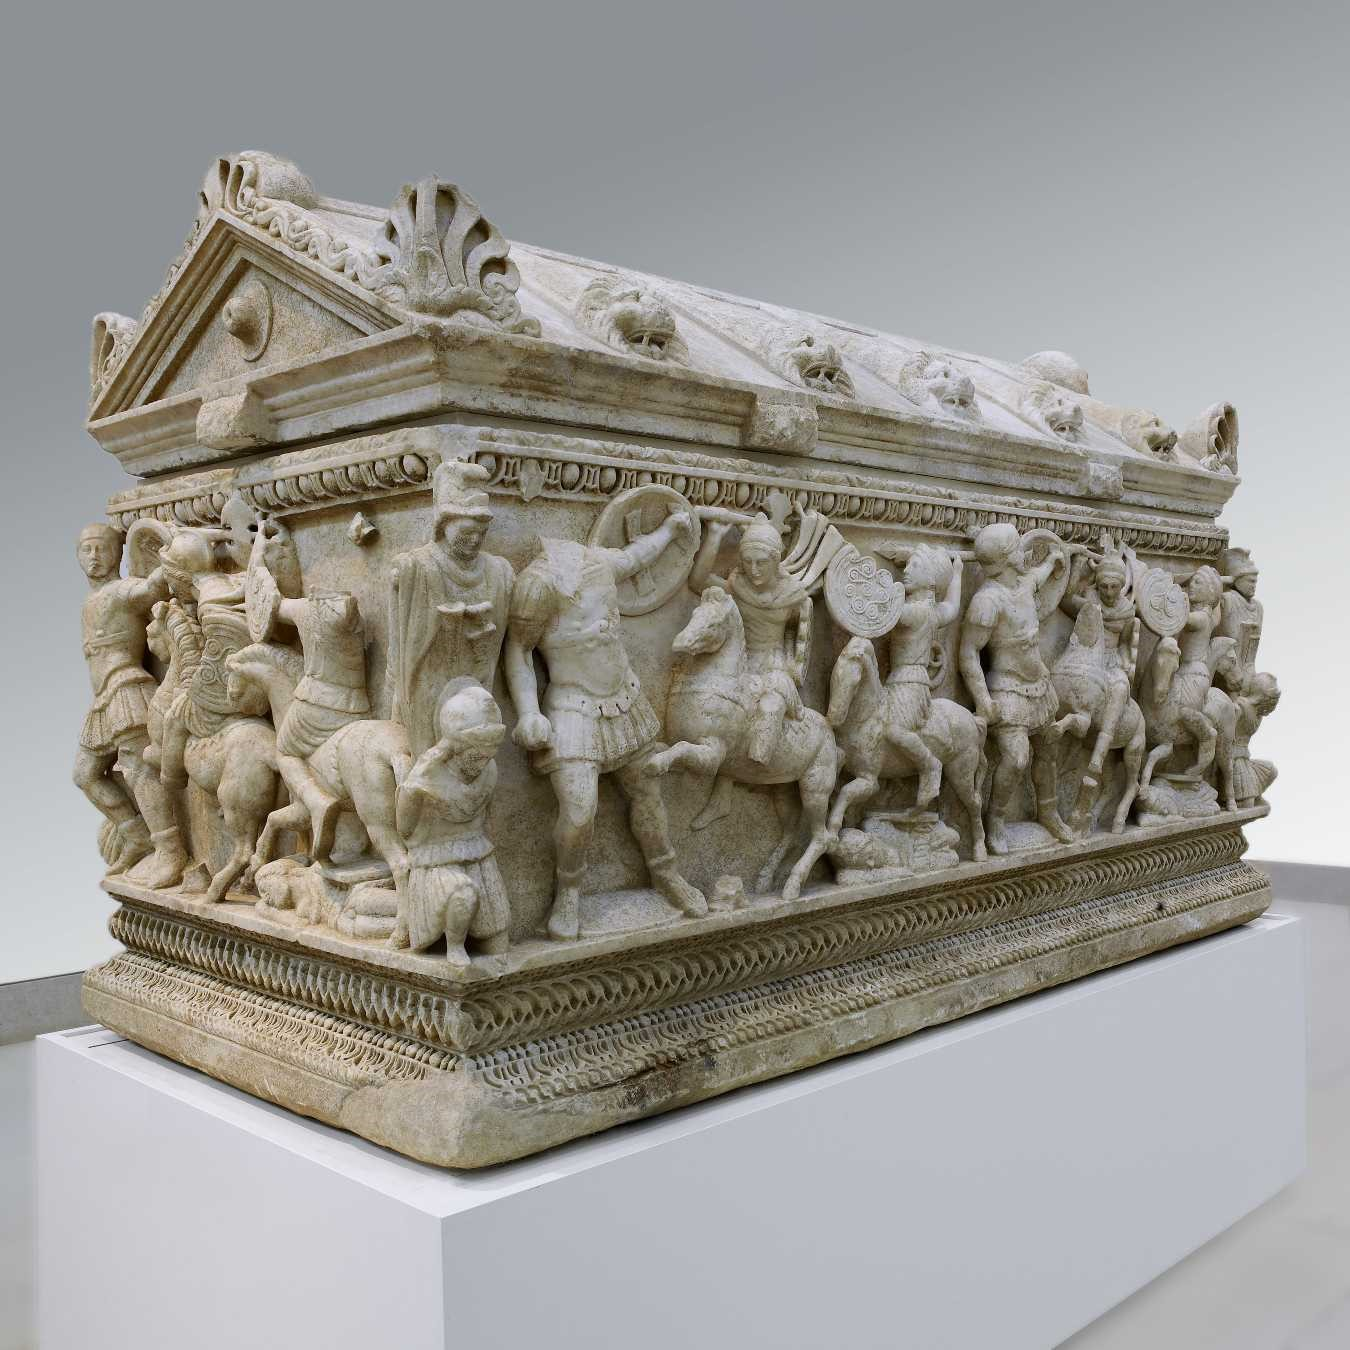 Sarcophagus with Soldiers and Amazons